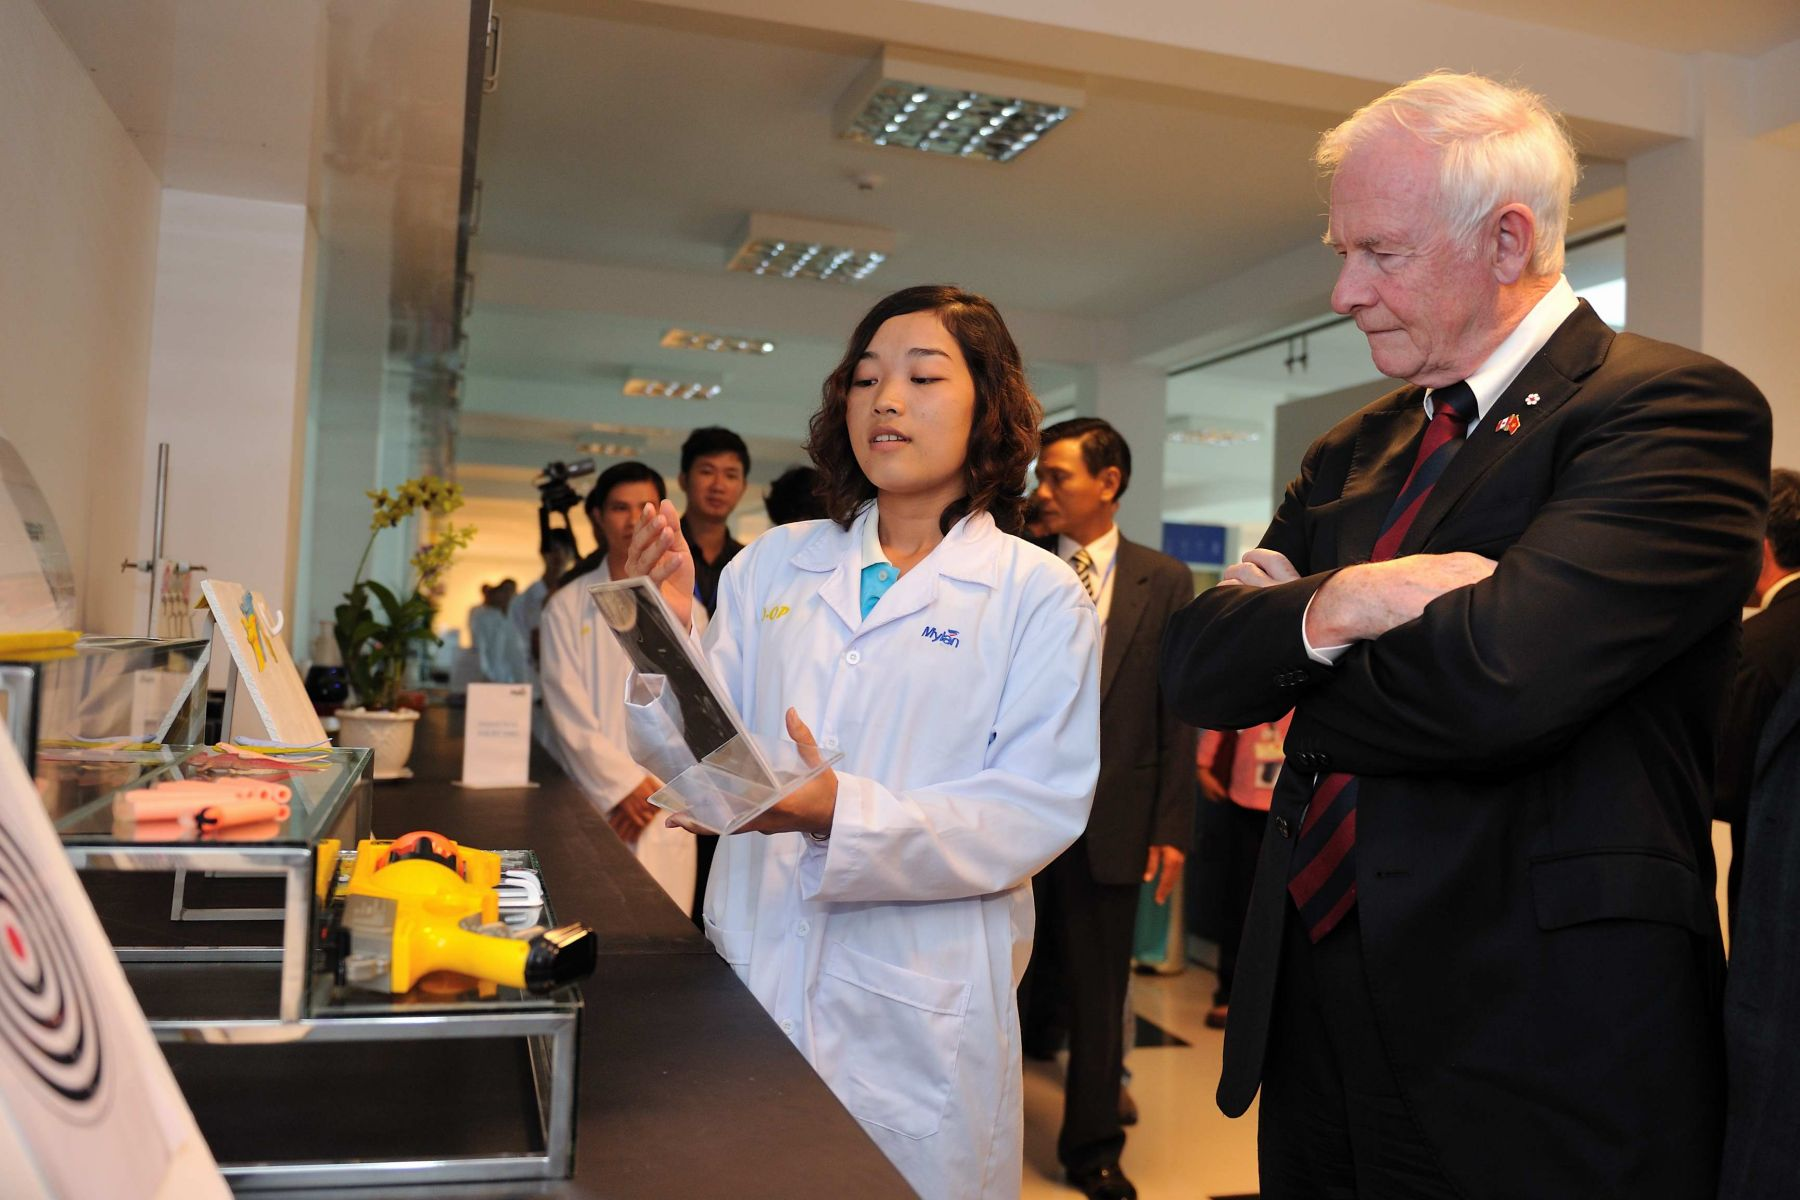 While in Tra Vinh City, His Excellency toured the Mylan Group Research and Development facilities.